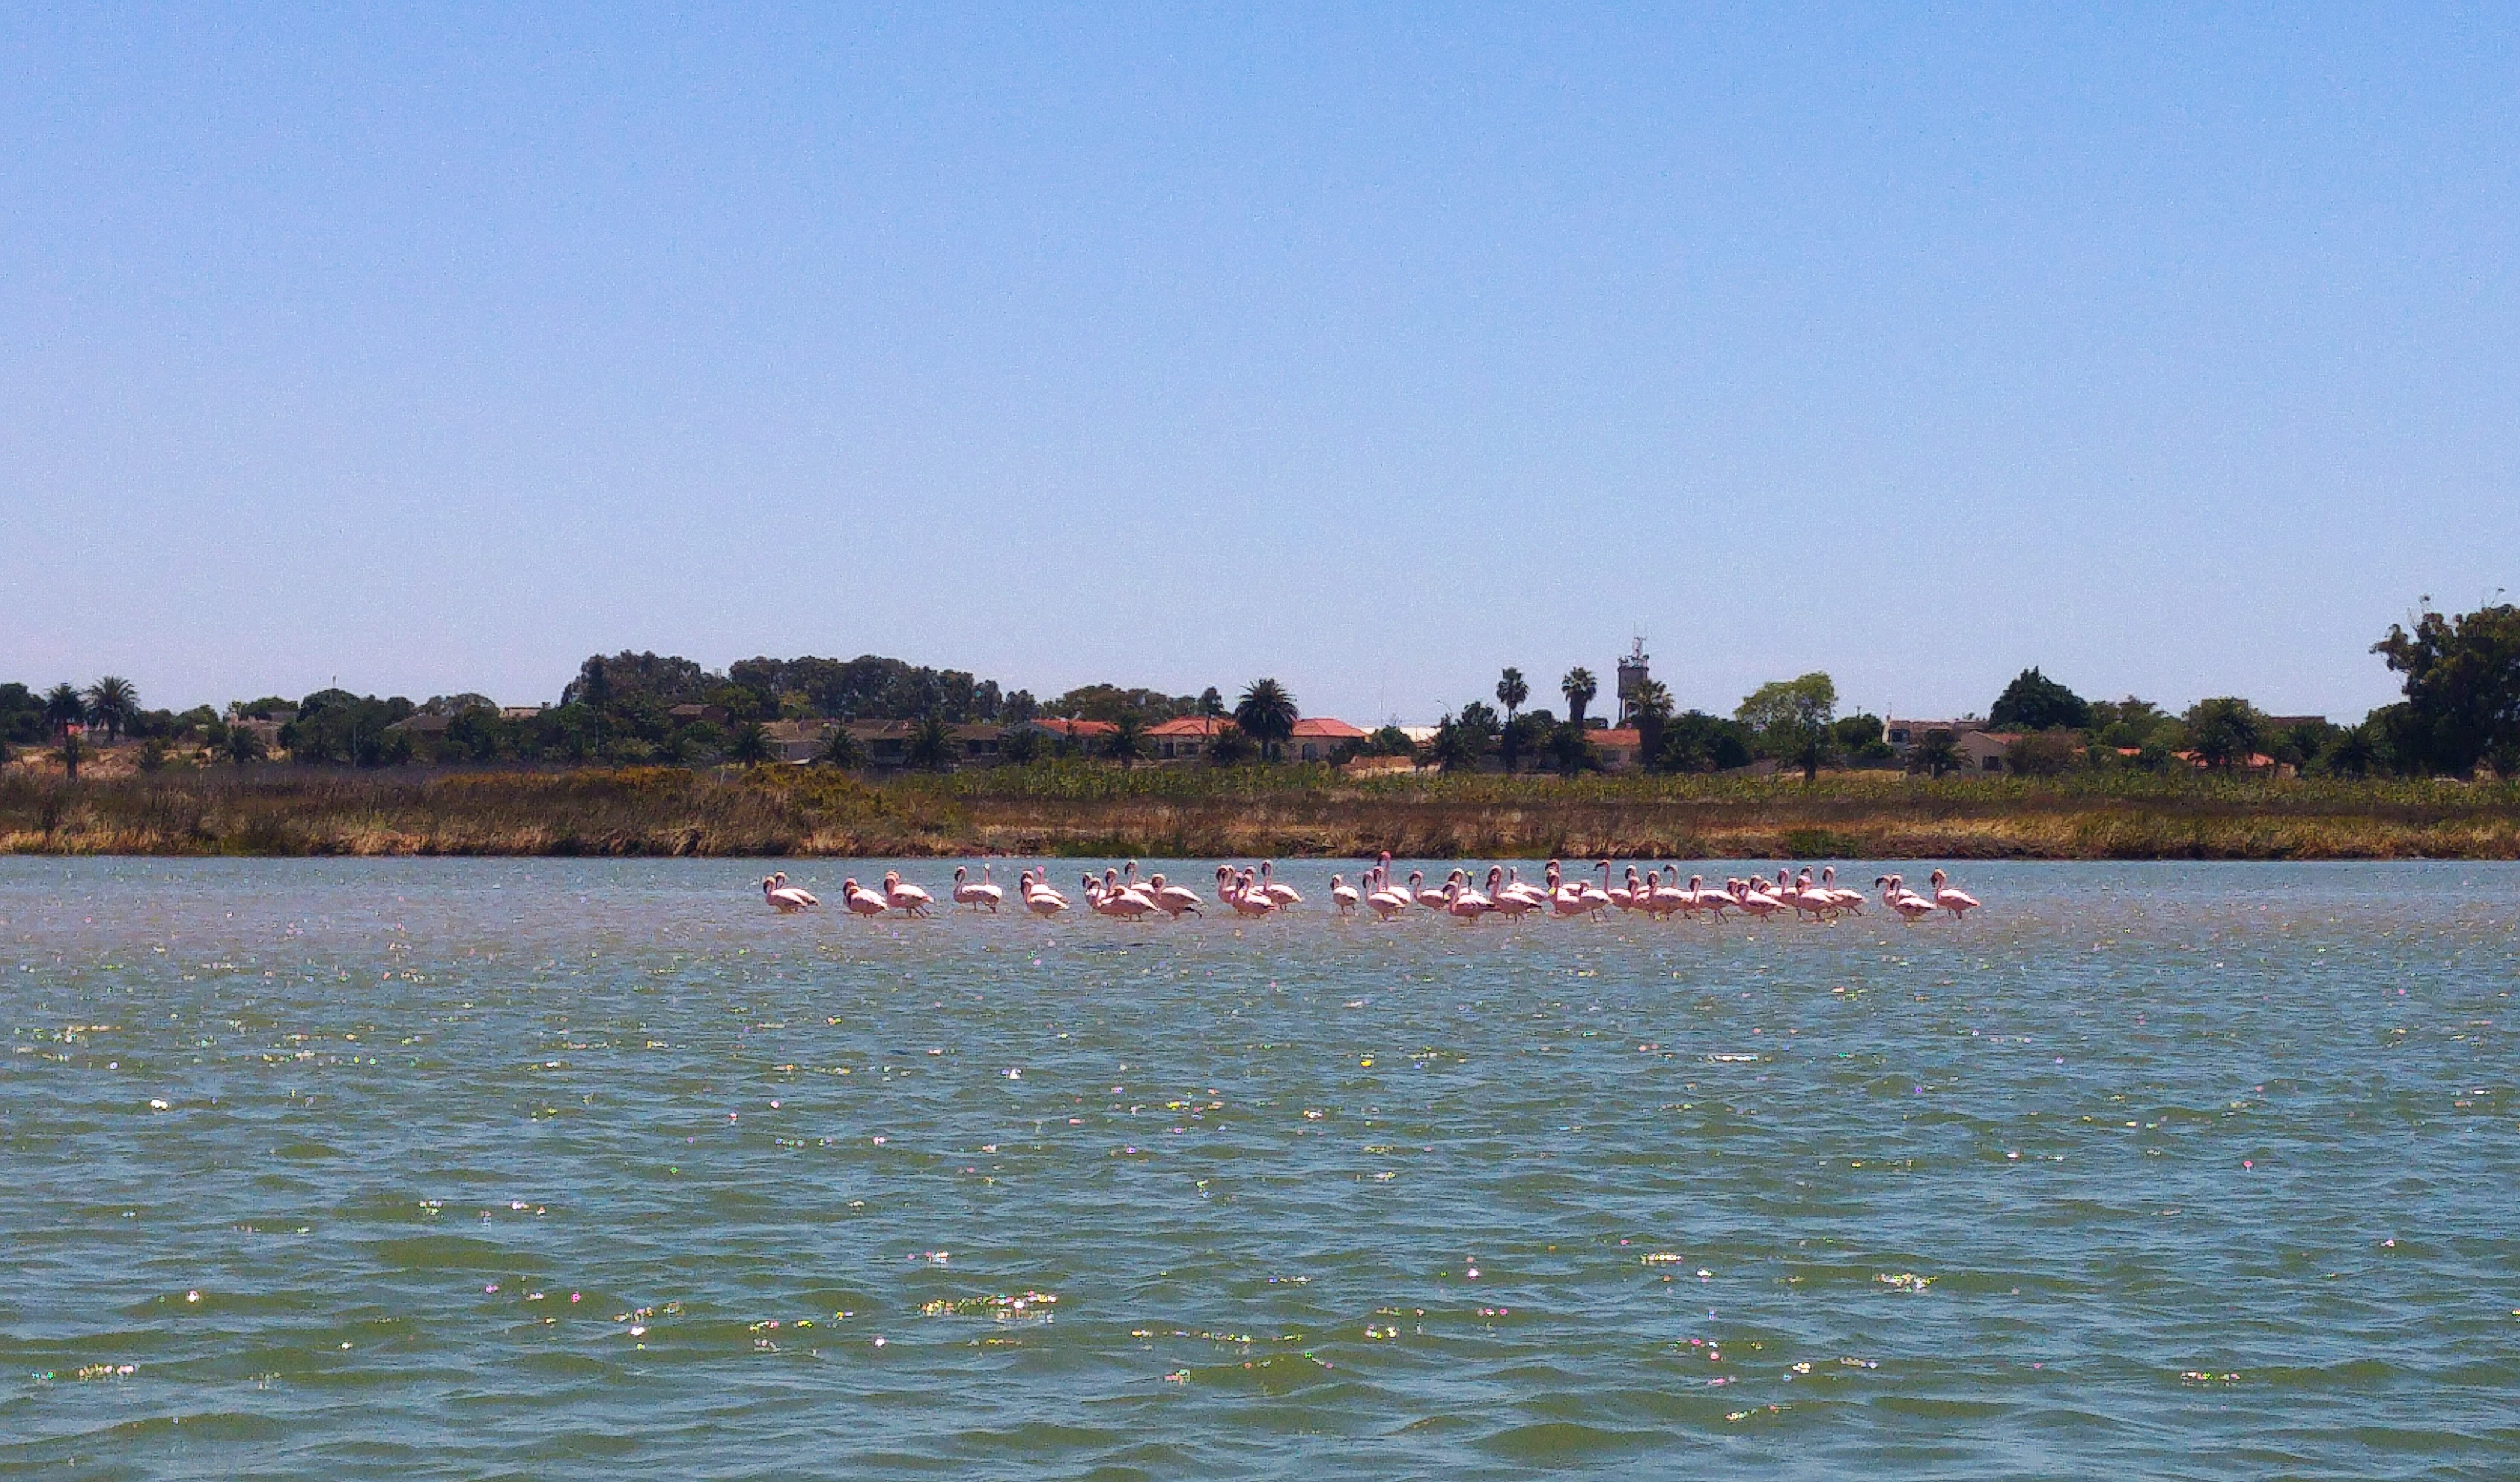 Flamingoes 11 Nov 2016